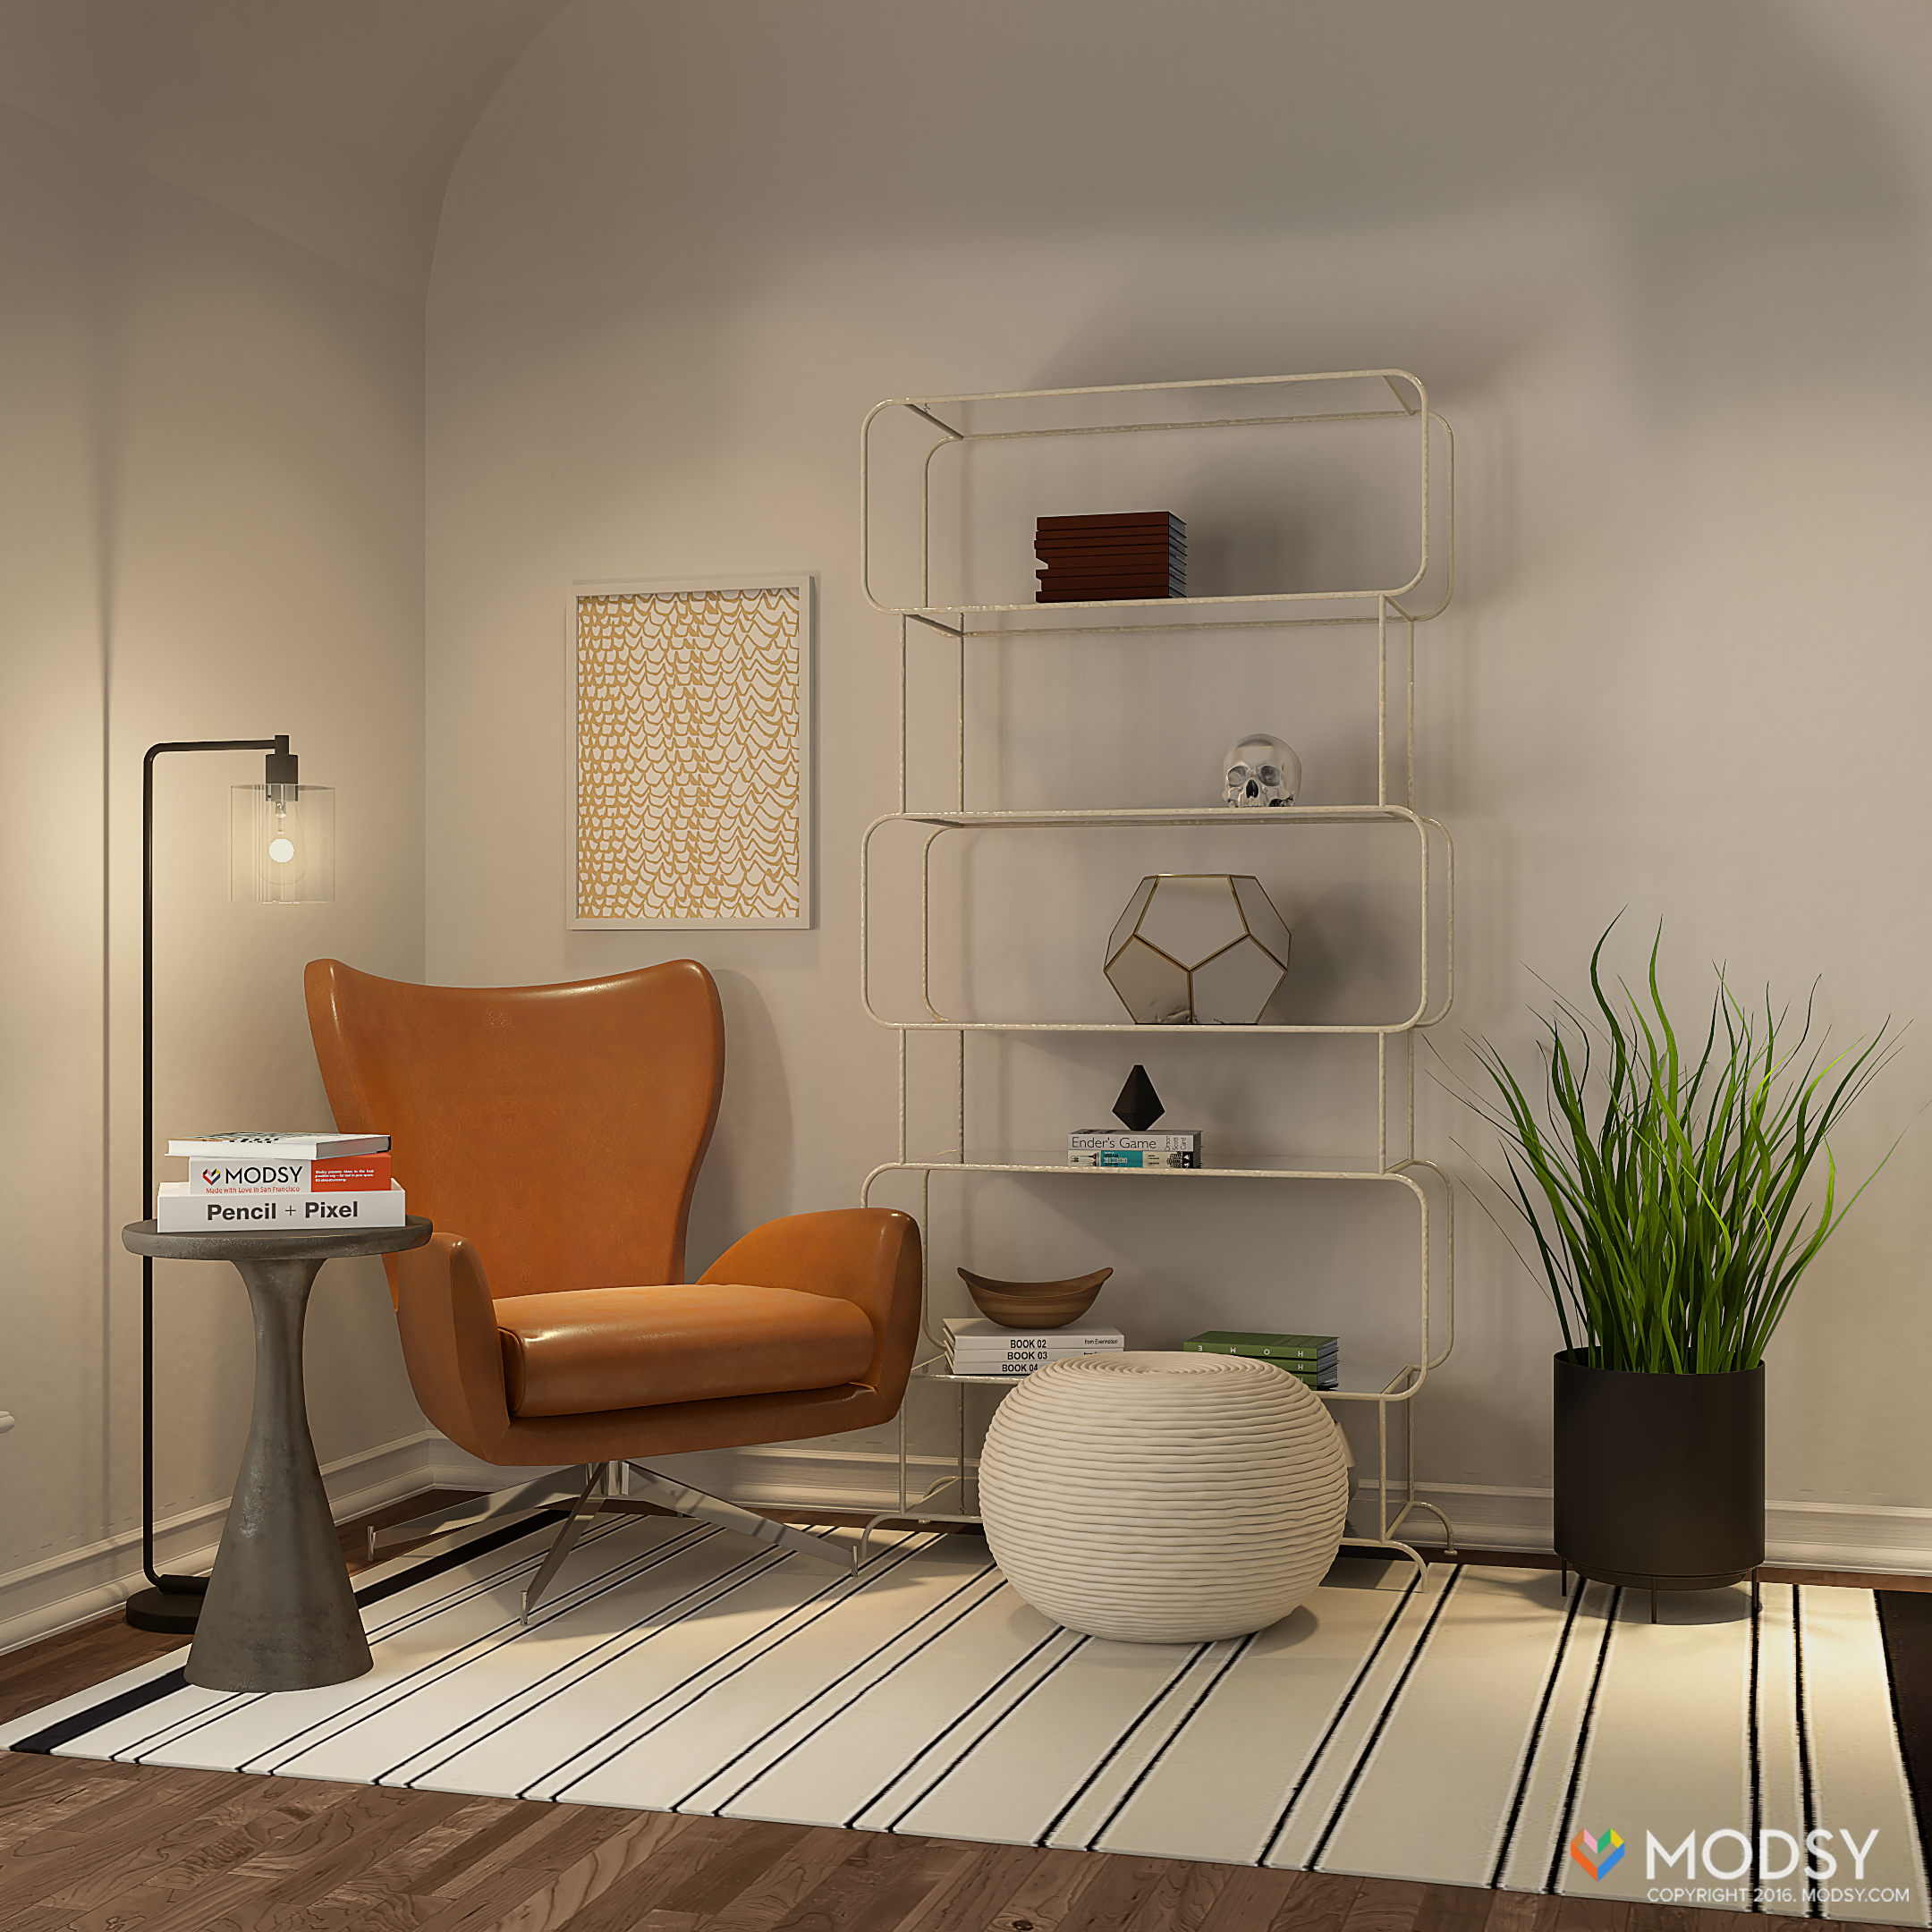 Modern Living Room Design 22 Ideas For Creating: Design Guide: Creating The Perfect Reading Nook For Any